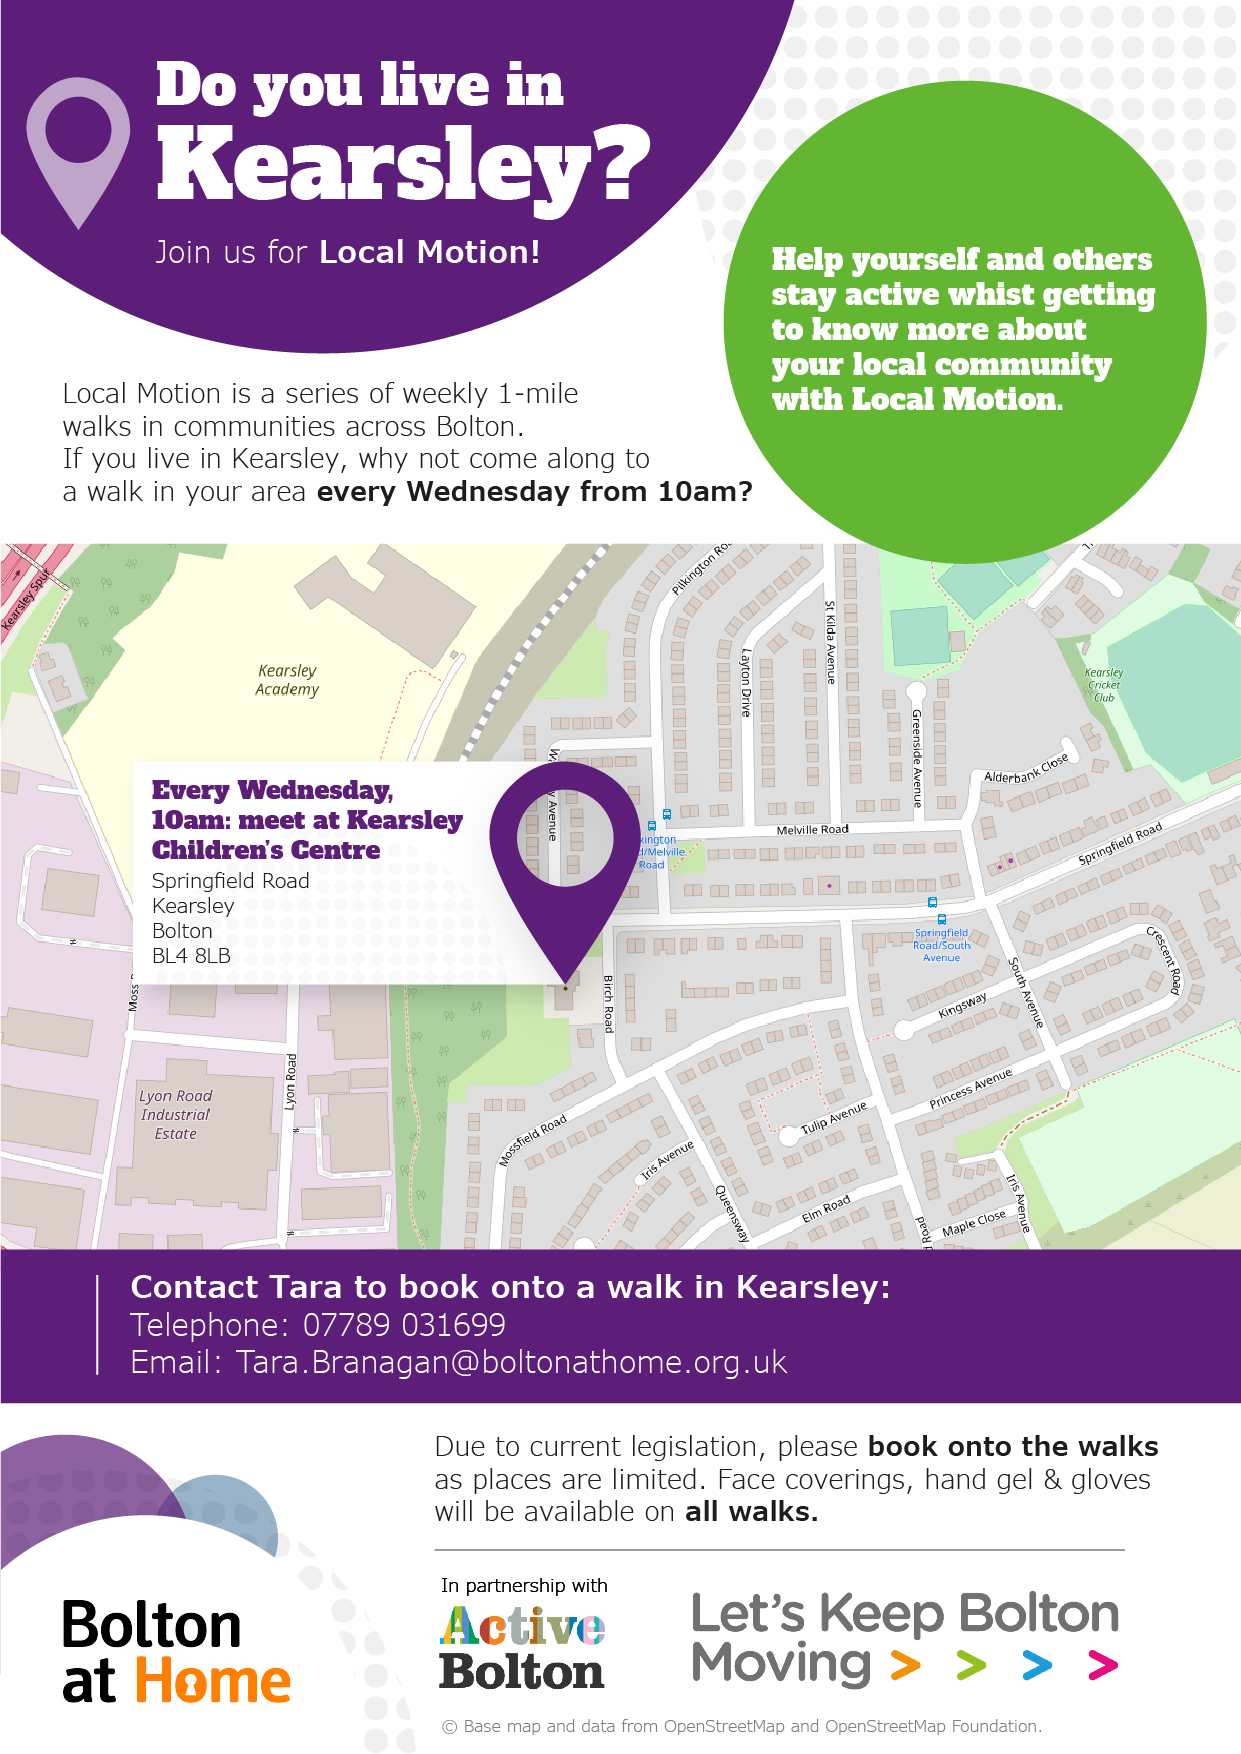 Poster displaying details of Local Motion walks in Kearsley. These details are available in text form using the table in the 'full Local Motion walks schedule below.